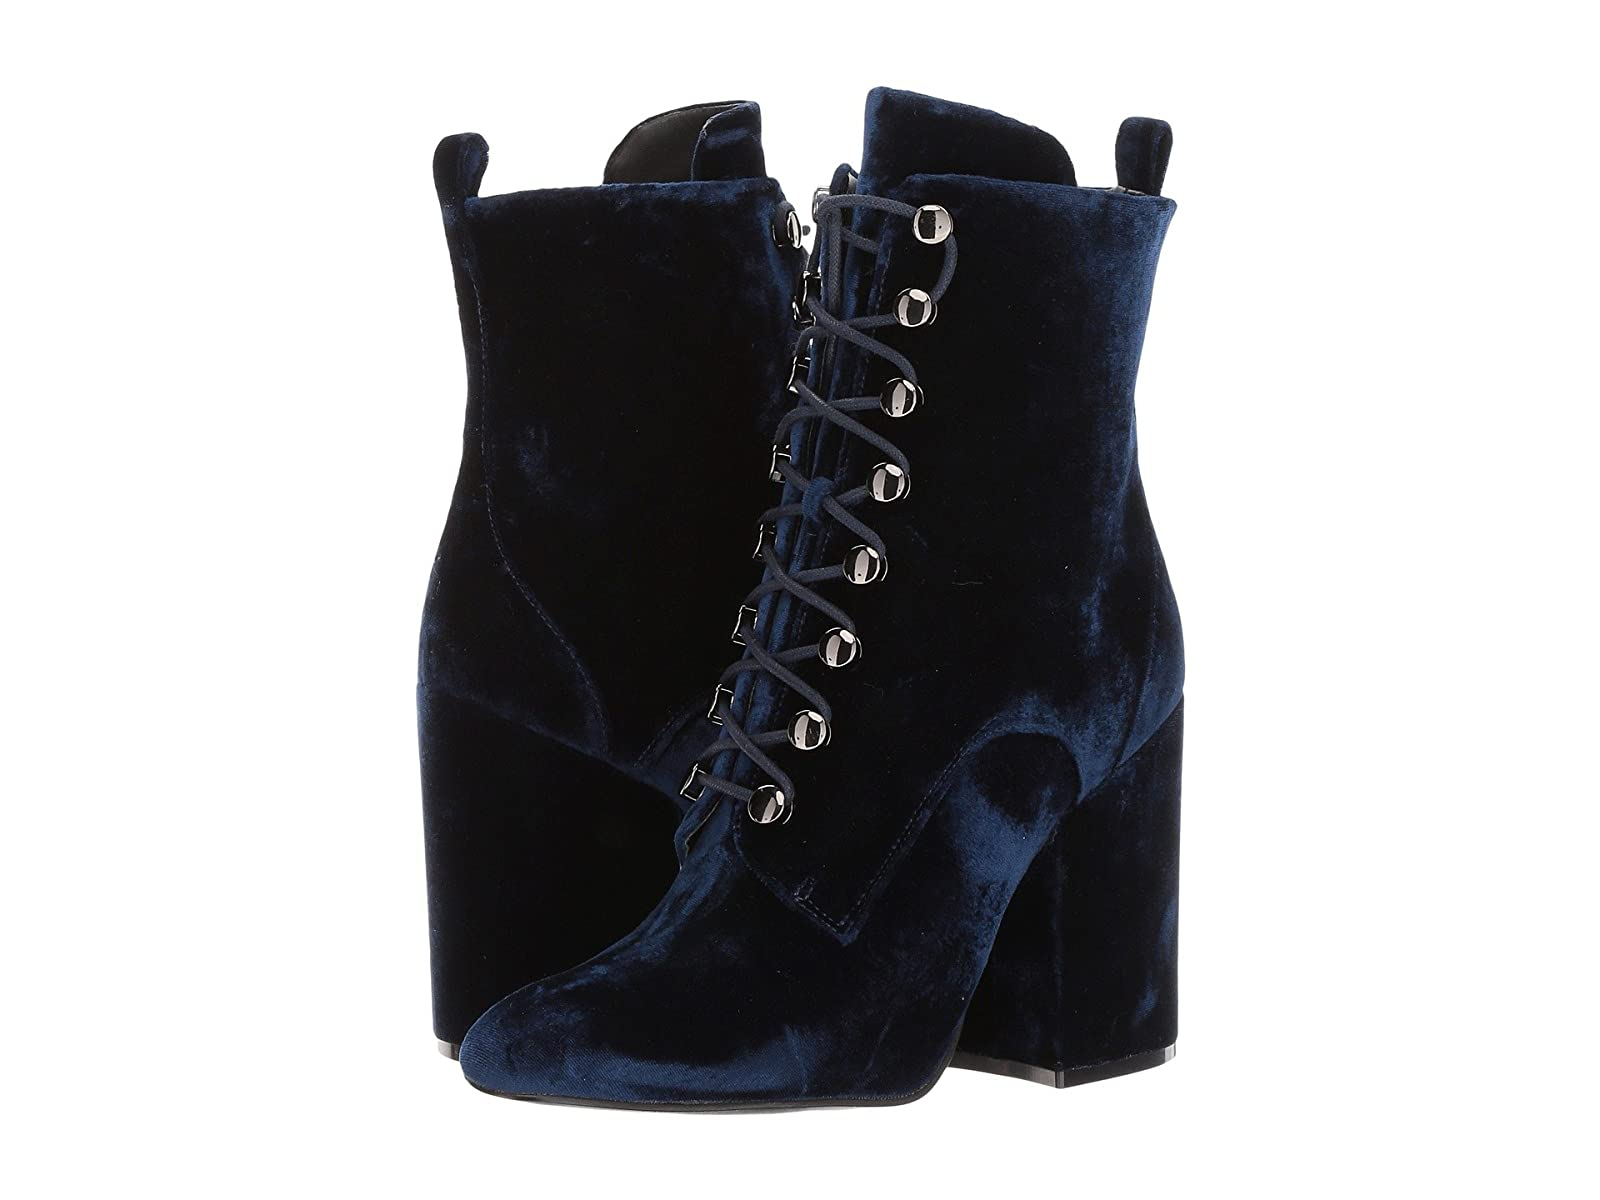 KENDALL + KYLIE Bridget 2Cheap and distinctive eye-catching shoes